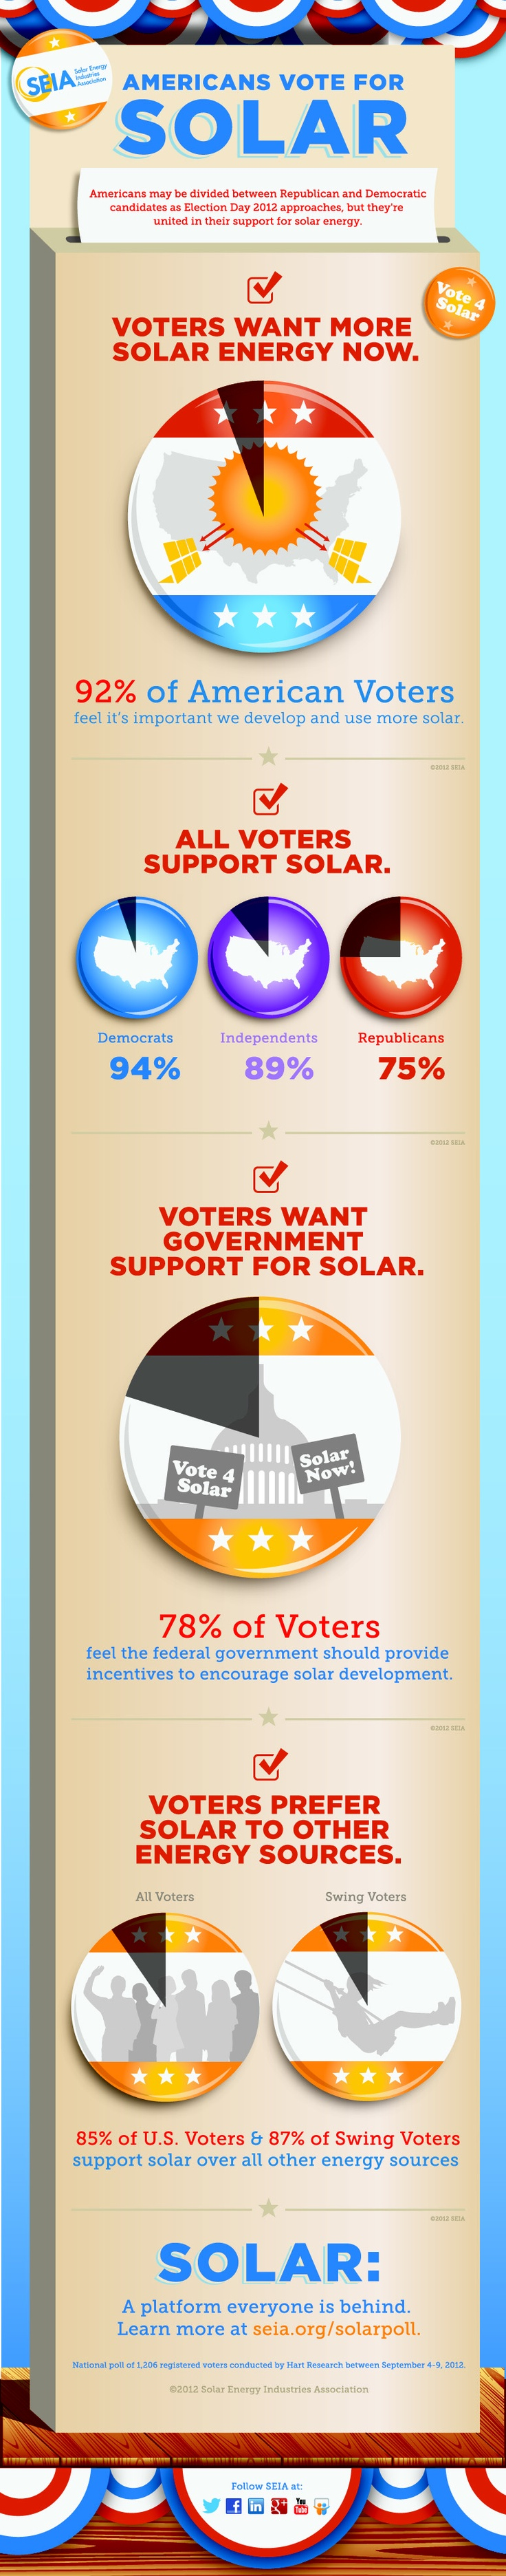 best images about solar infographics solar c4e6f10eb58e68c3bc8fb93213dfafce jpg